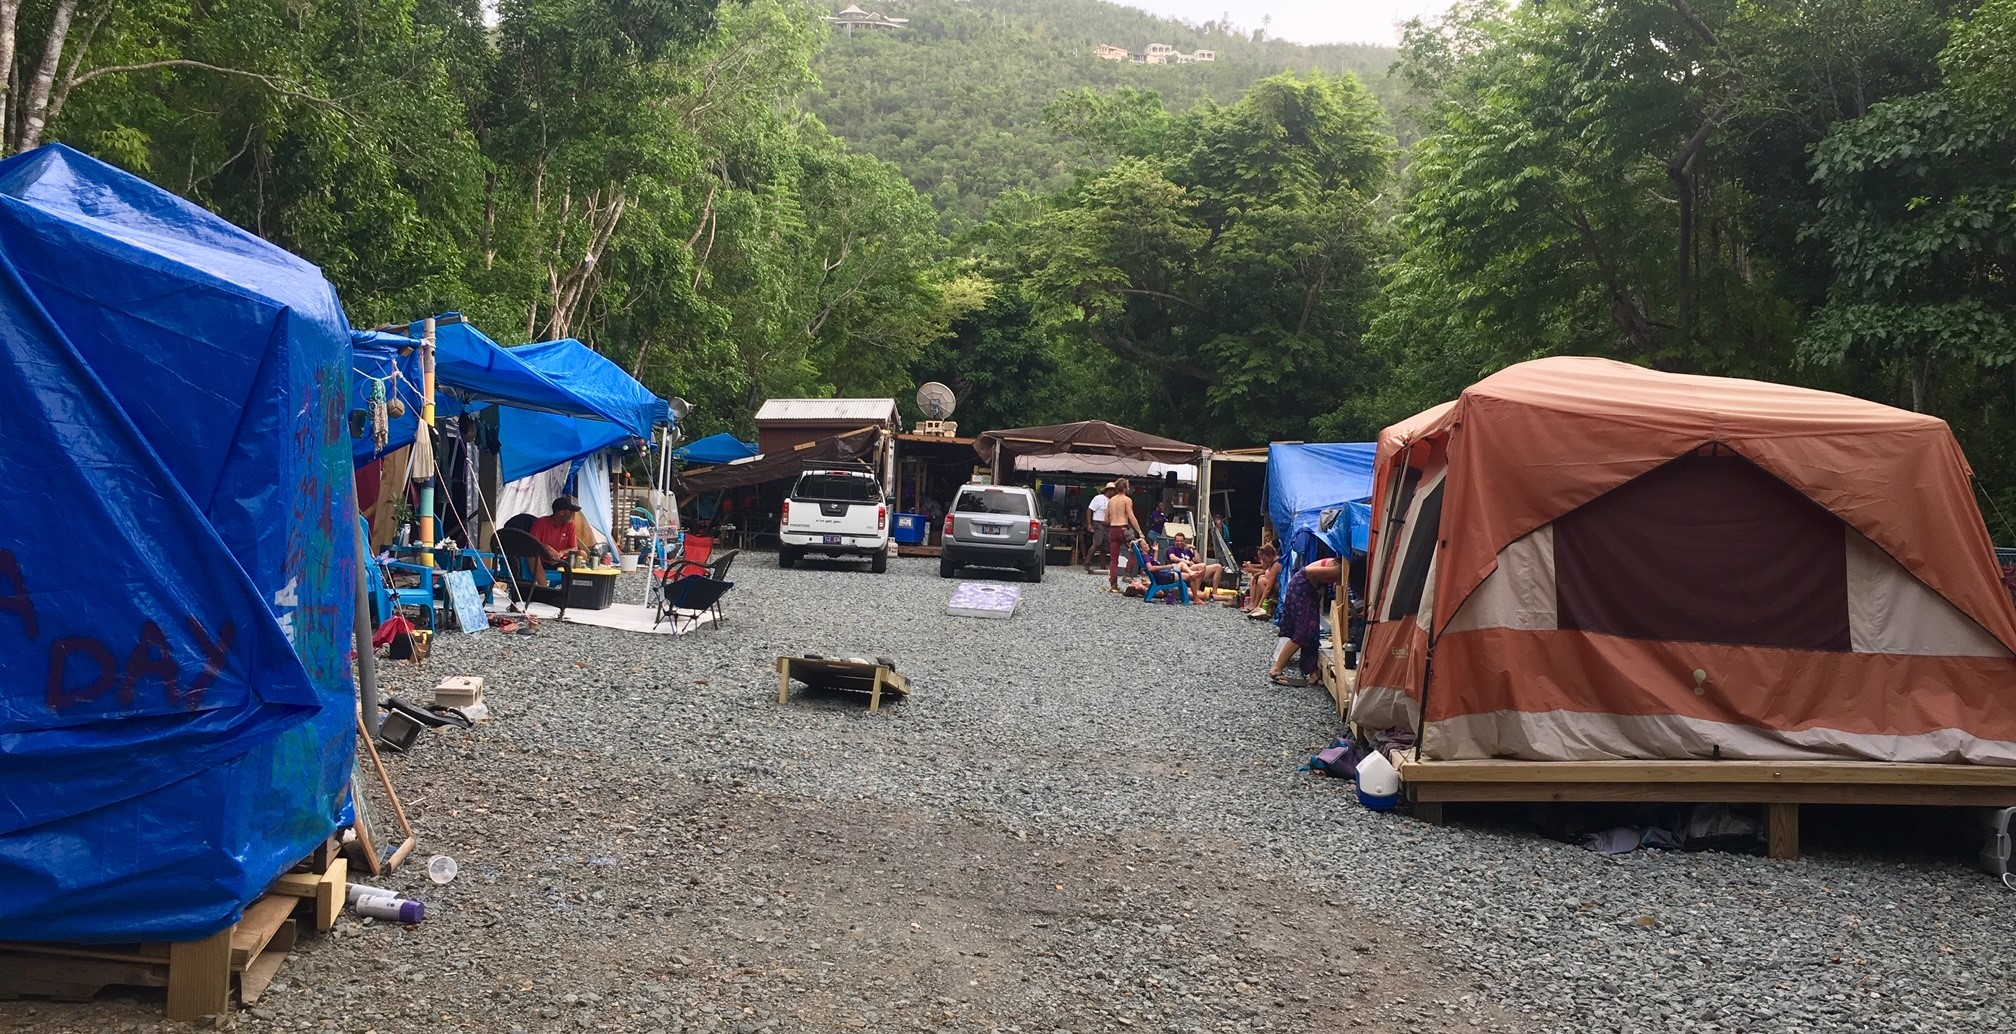 All Hands and Hearts basecamp on St. John. I lived in a tiny backpacking tent just past the tent on the right.